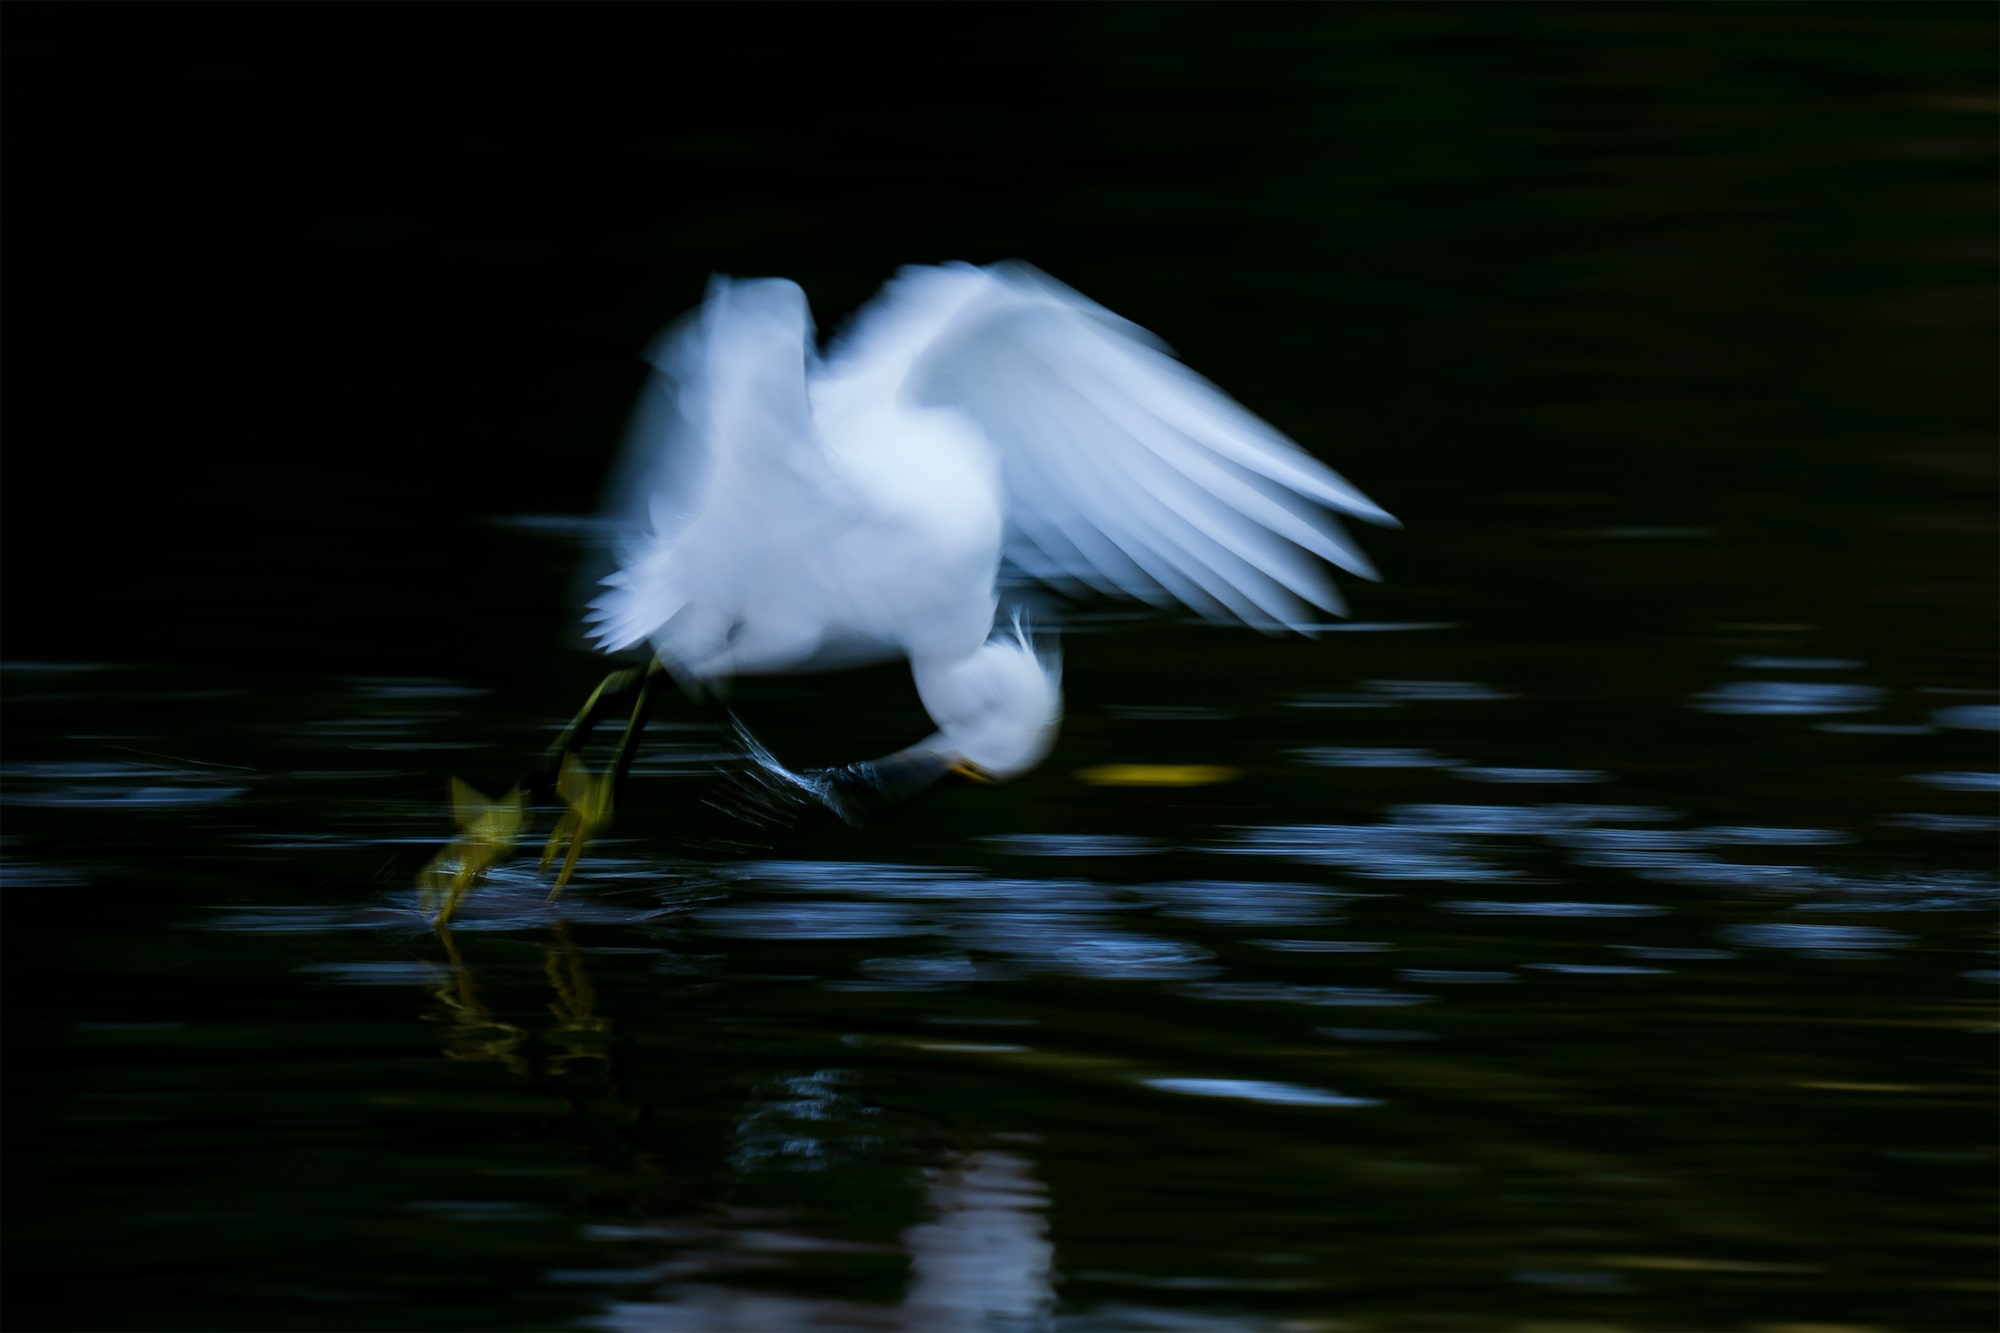 andreas-hemb-sony-alpha-9-a-bird-takes-off-from-a-lake-with-a-fish-in-its-beak